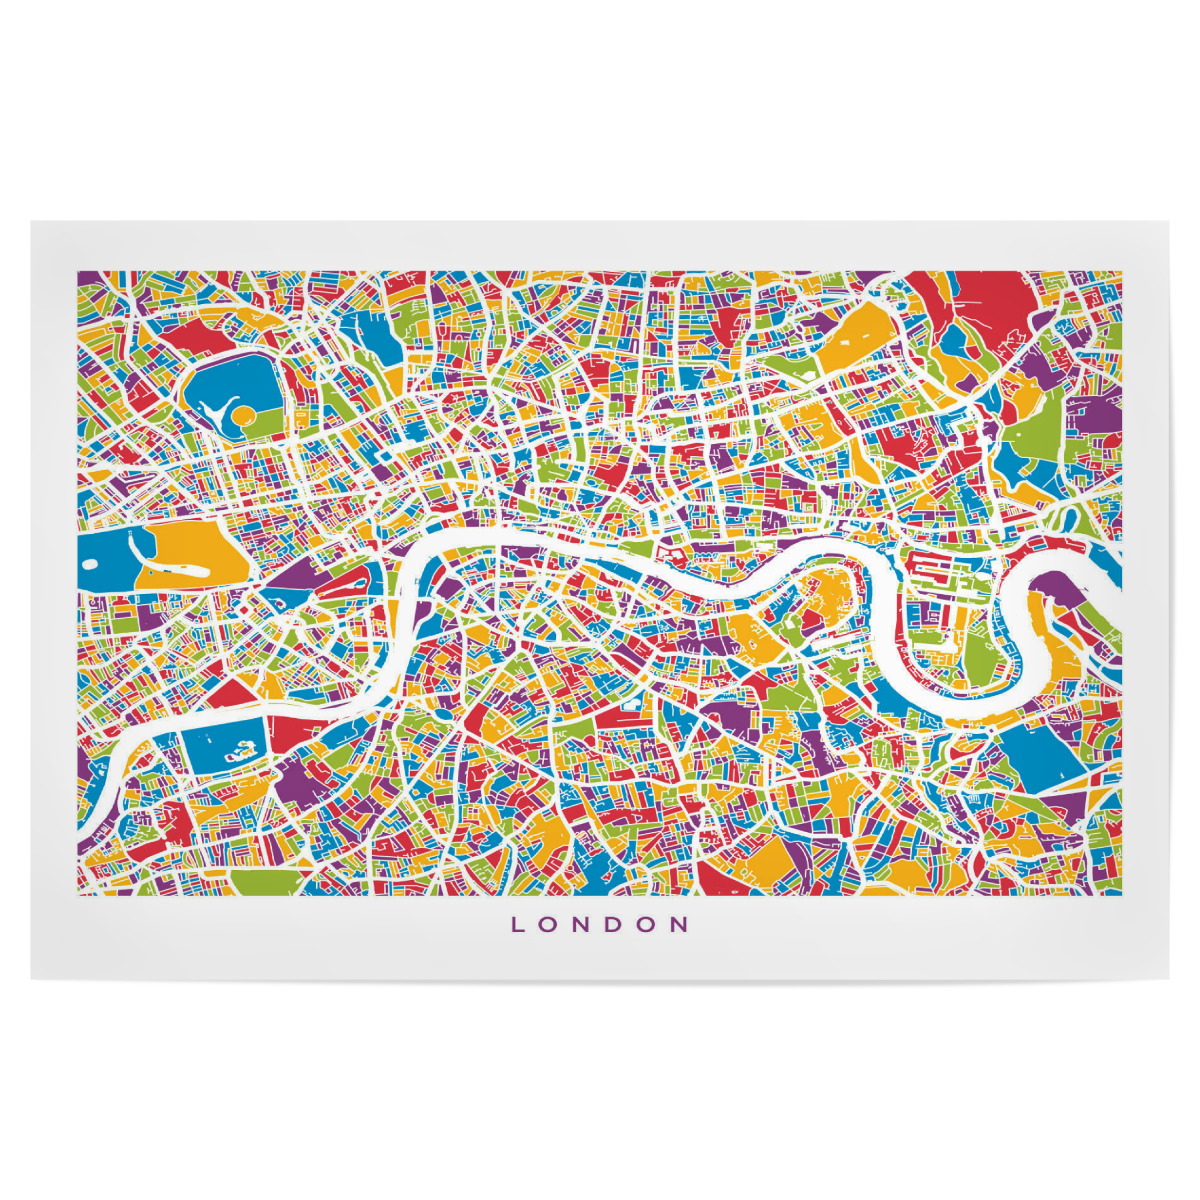 London In England Map.Purchase The London England Street Map As A Poster At Artboxone